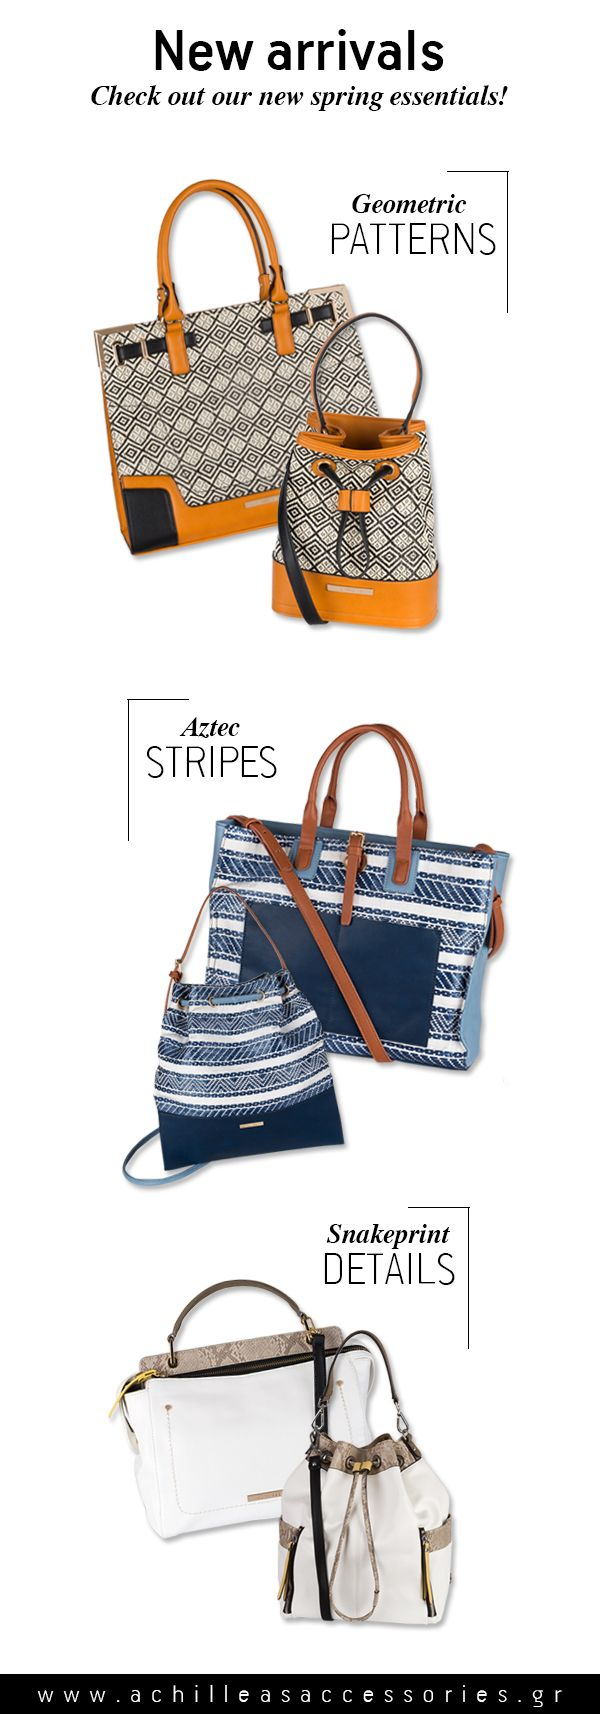 Aztec prints, geometrical patterns and snakeprint details. New arrivals, now available! #accessories #bags #ss16